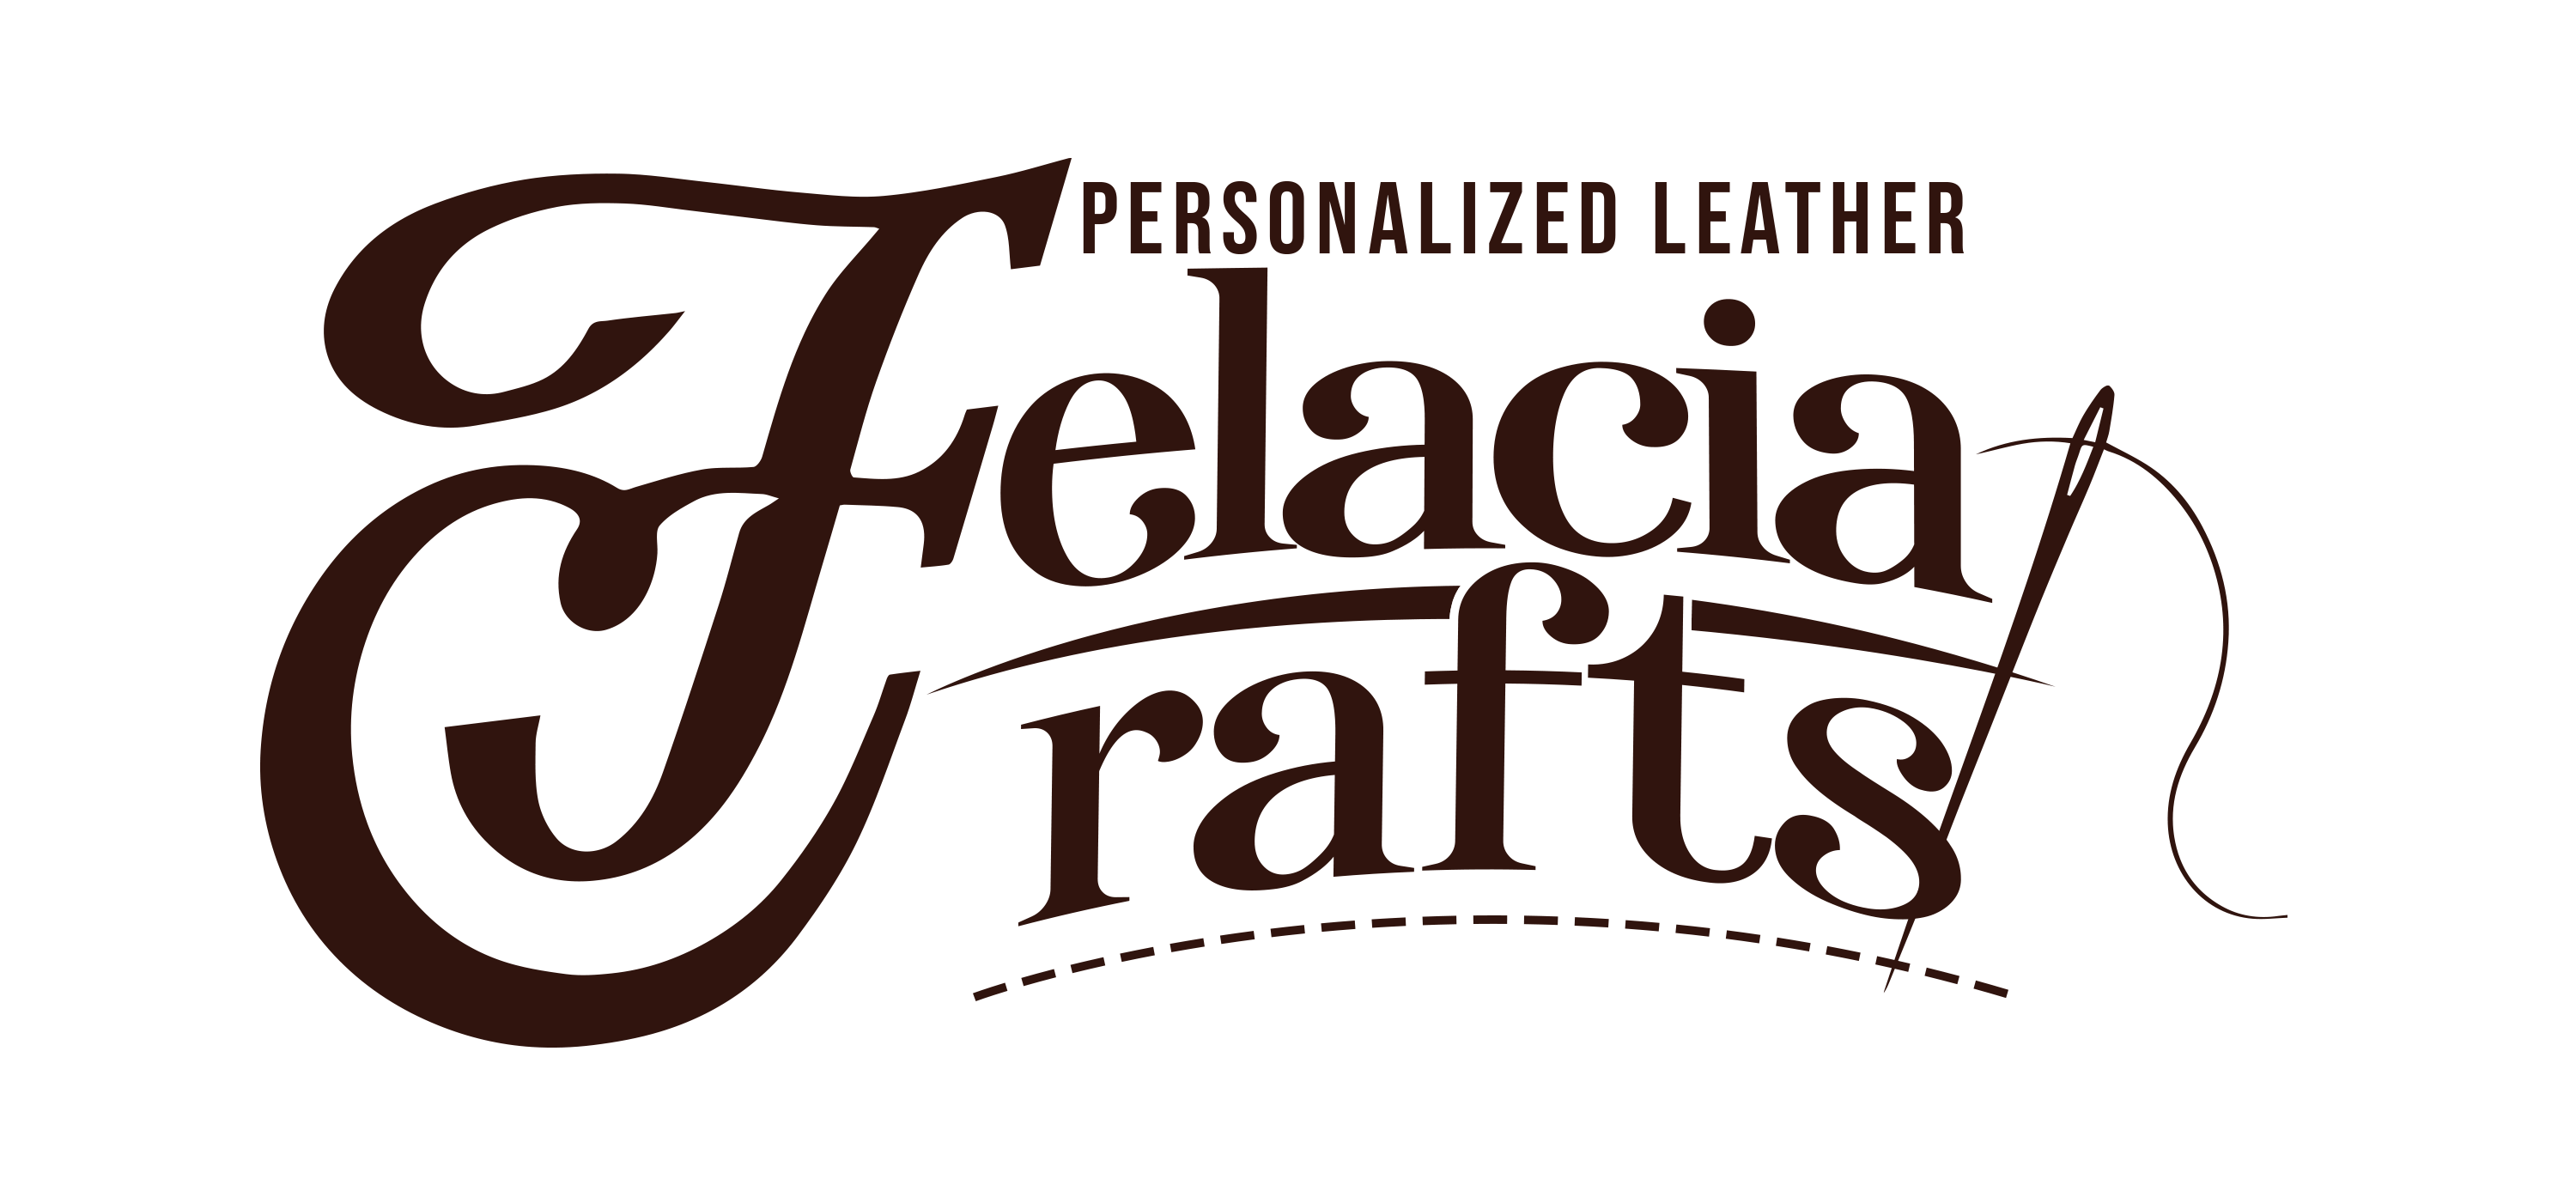 Felacia Crafts